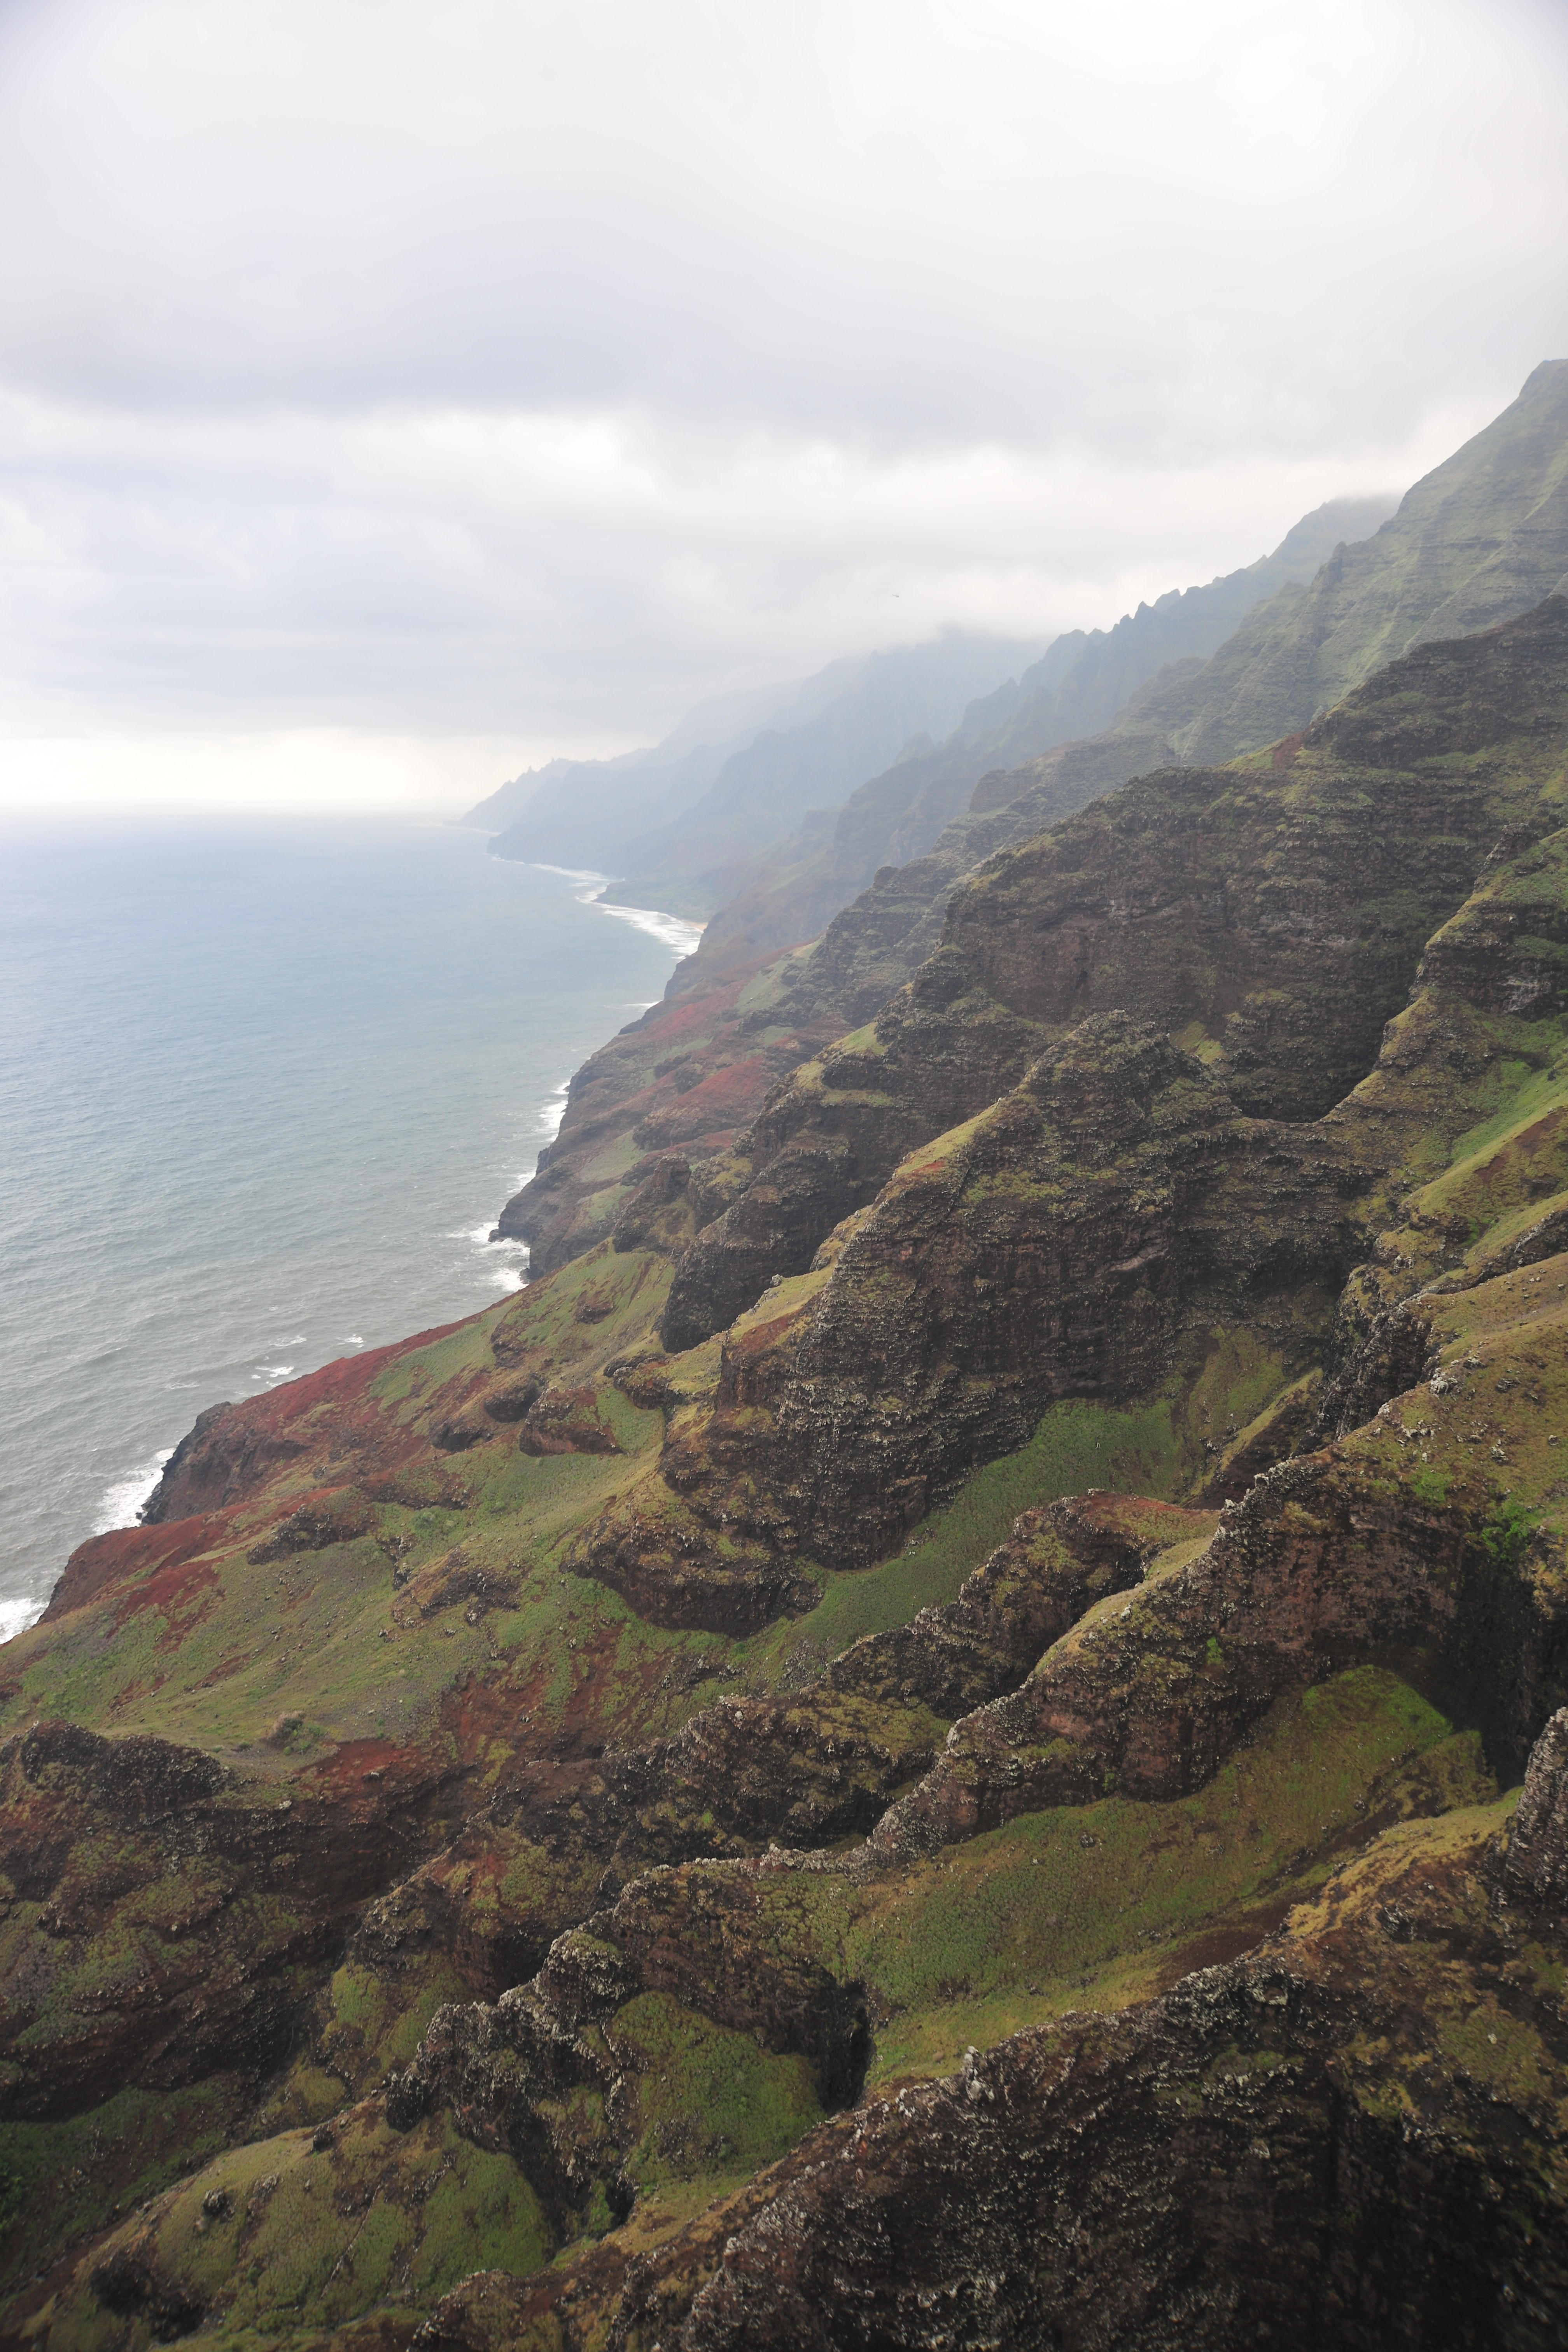 The side of a grassy mountain along the coast on a foggy day in Kauai